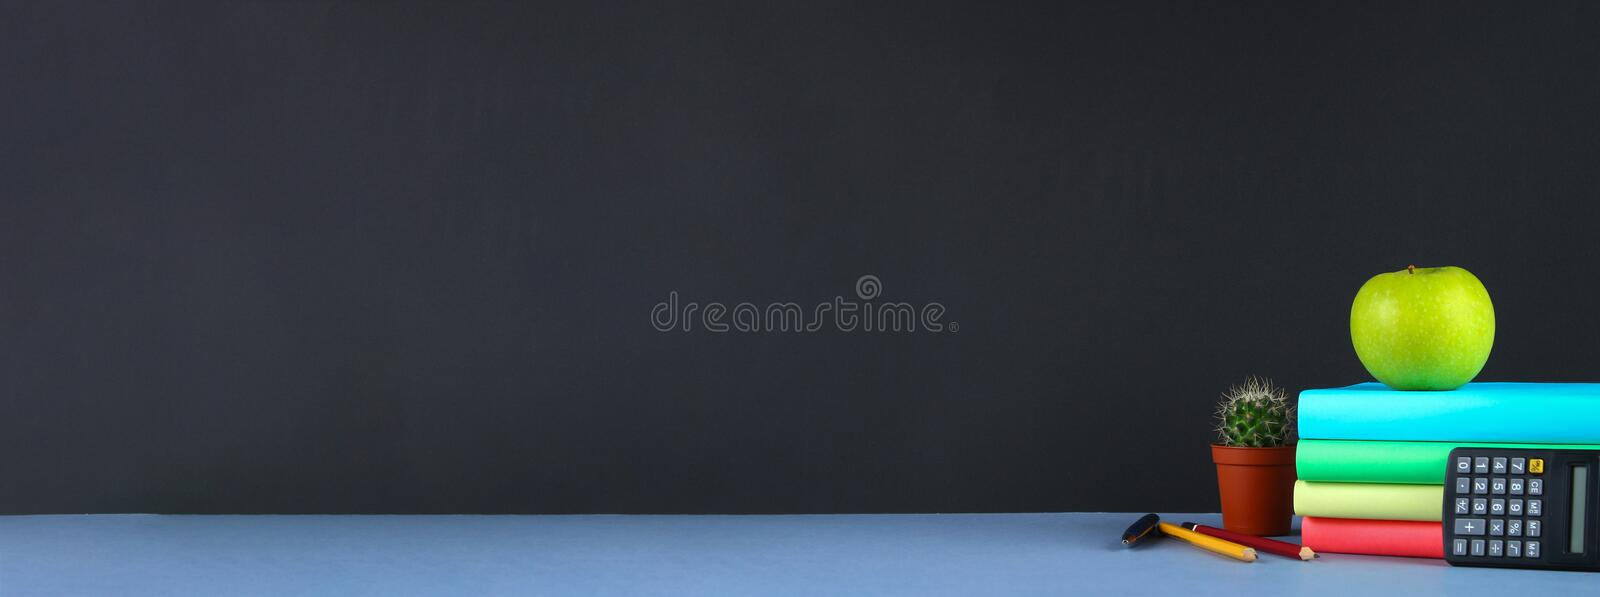 A pile of books and stationery on a chalkboard background. Work desk, education, school. Banner. stock photos